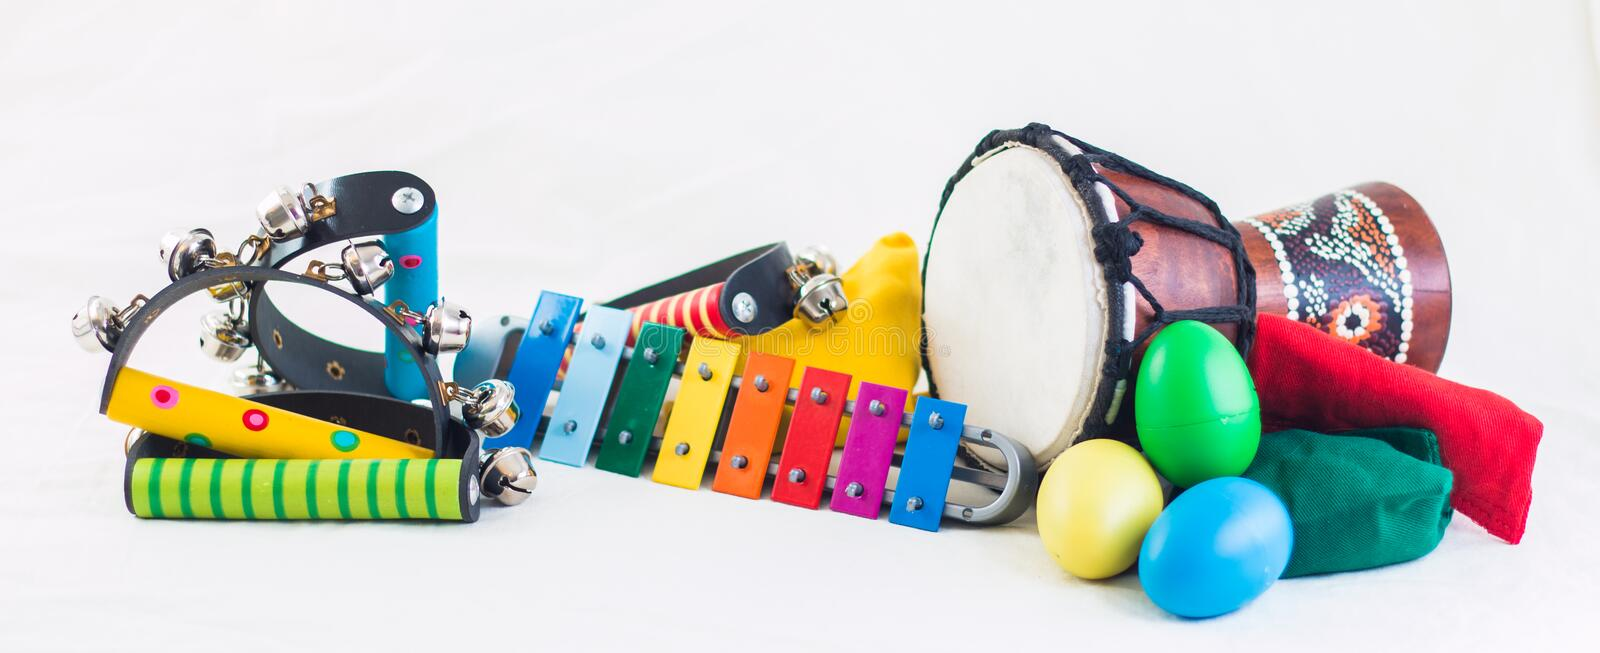 Rythm instruments. Kids musical instrument in many colors isolated on white background royalty free stock photo